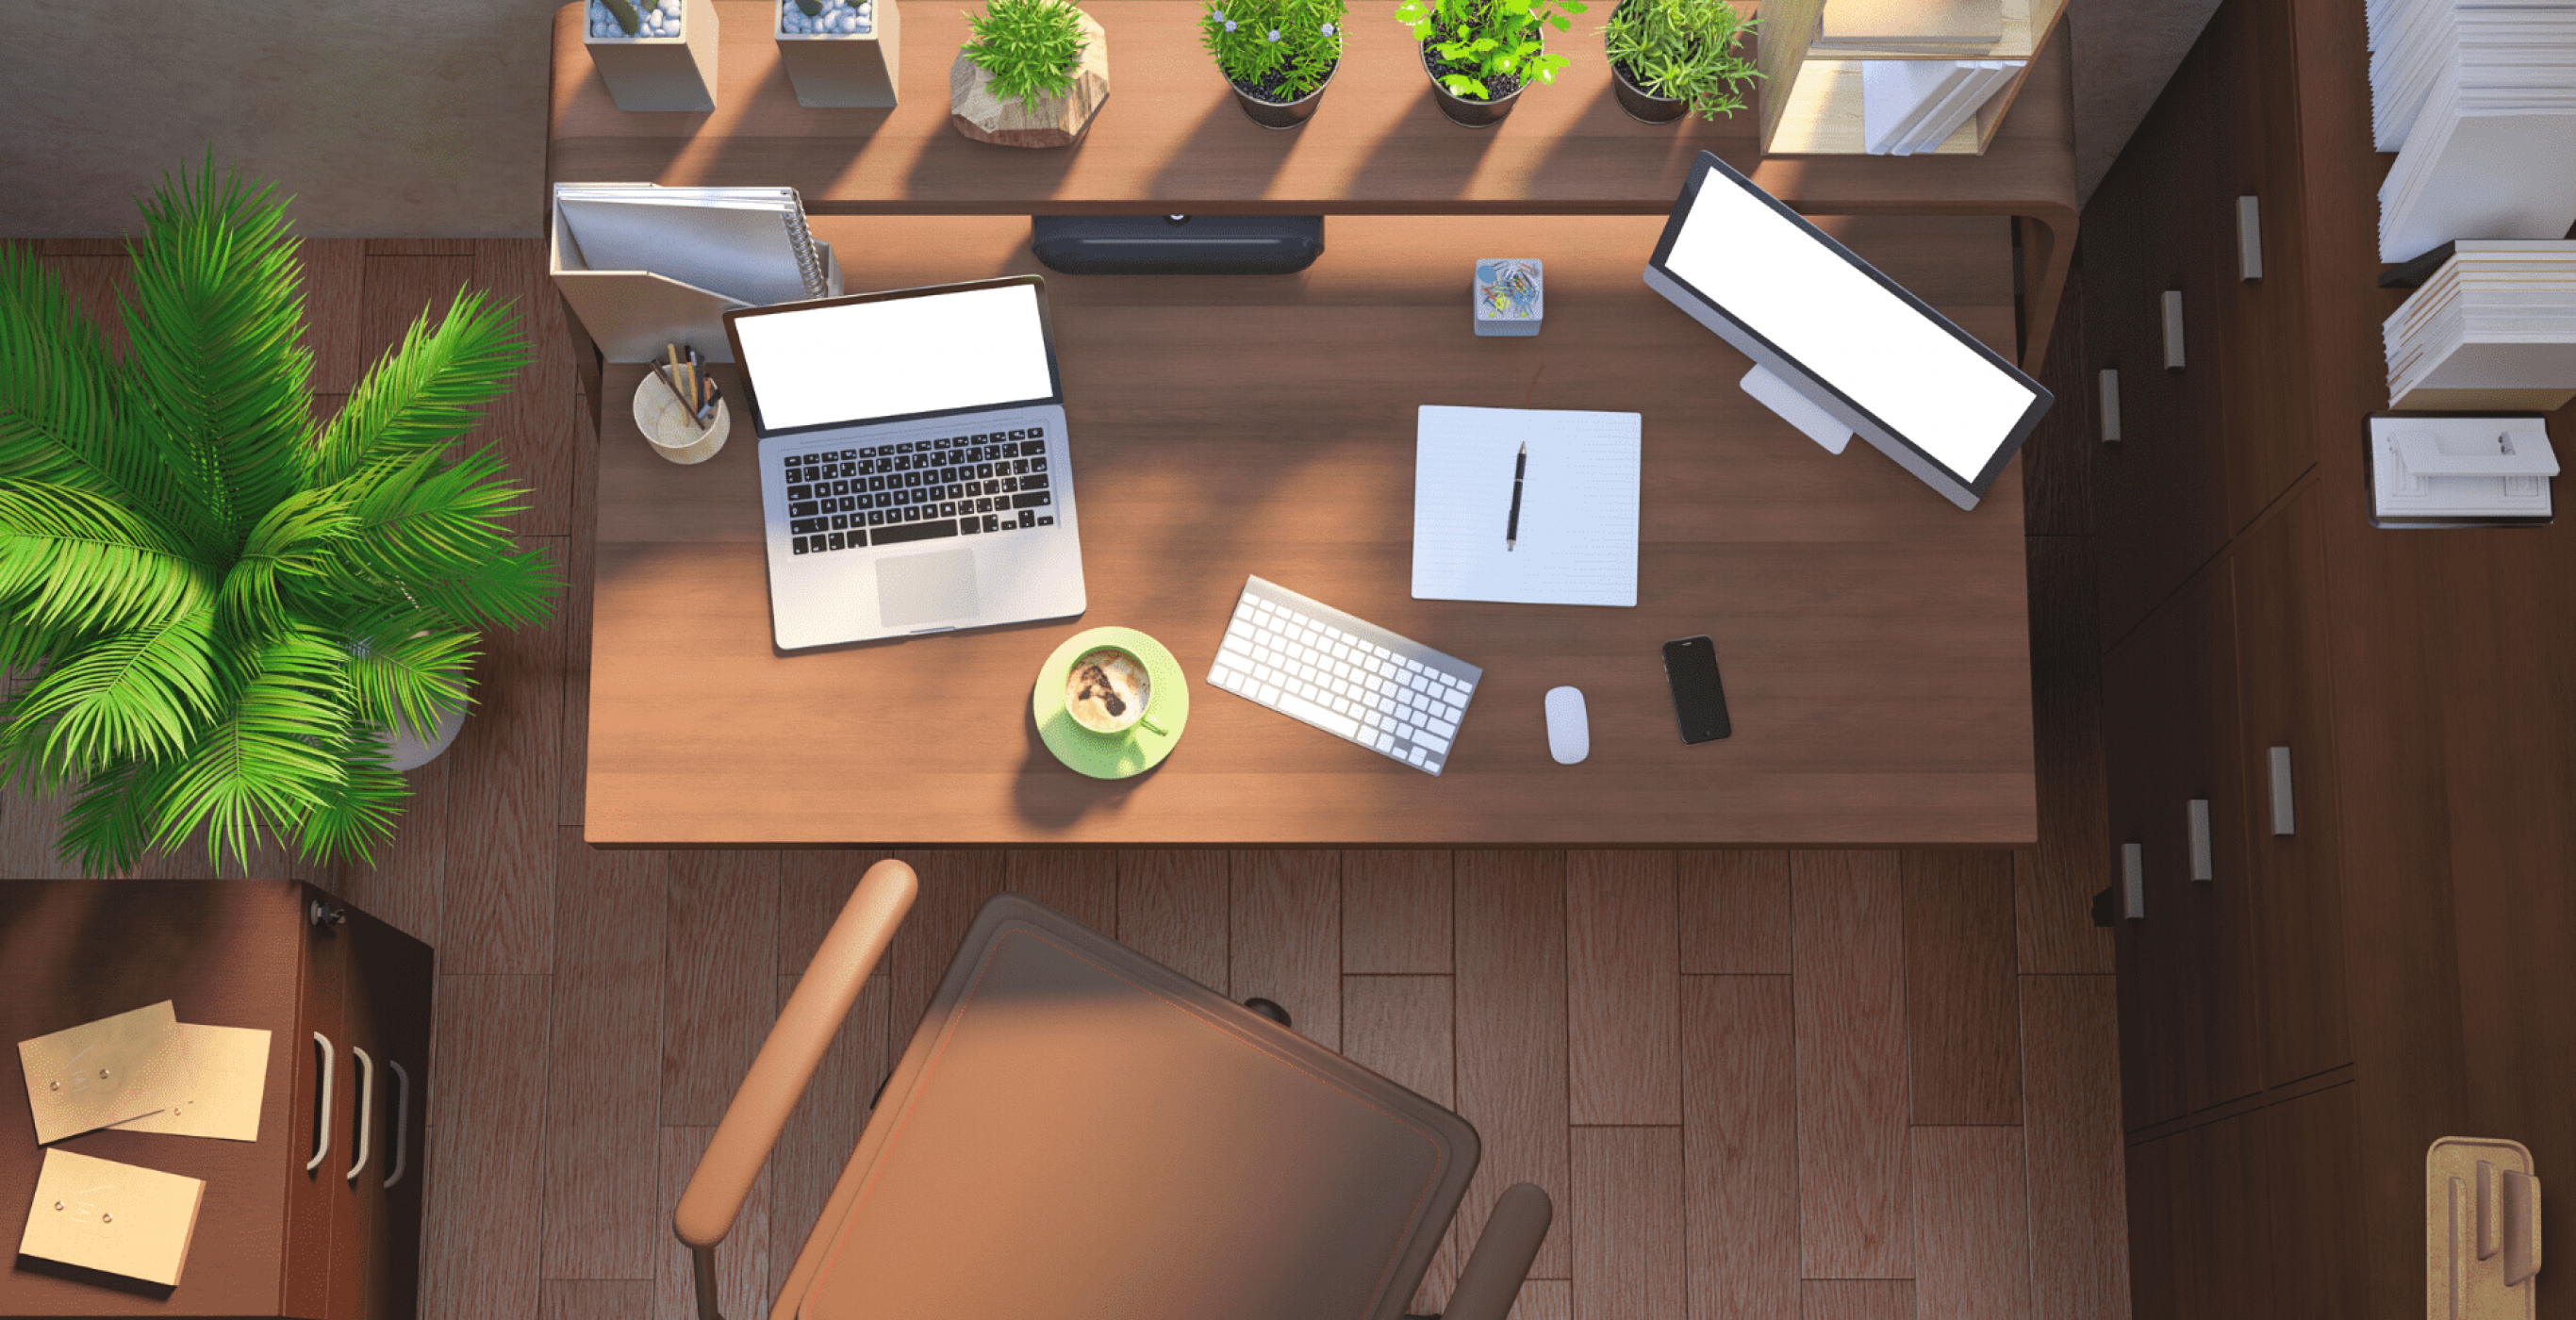 An aerial view of a task chair and desk with work-related equipment, used as the featured image for the article 'Useful Desk Accessories for Your Home Office' on phmillennia.com